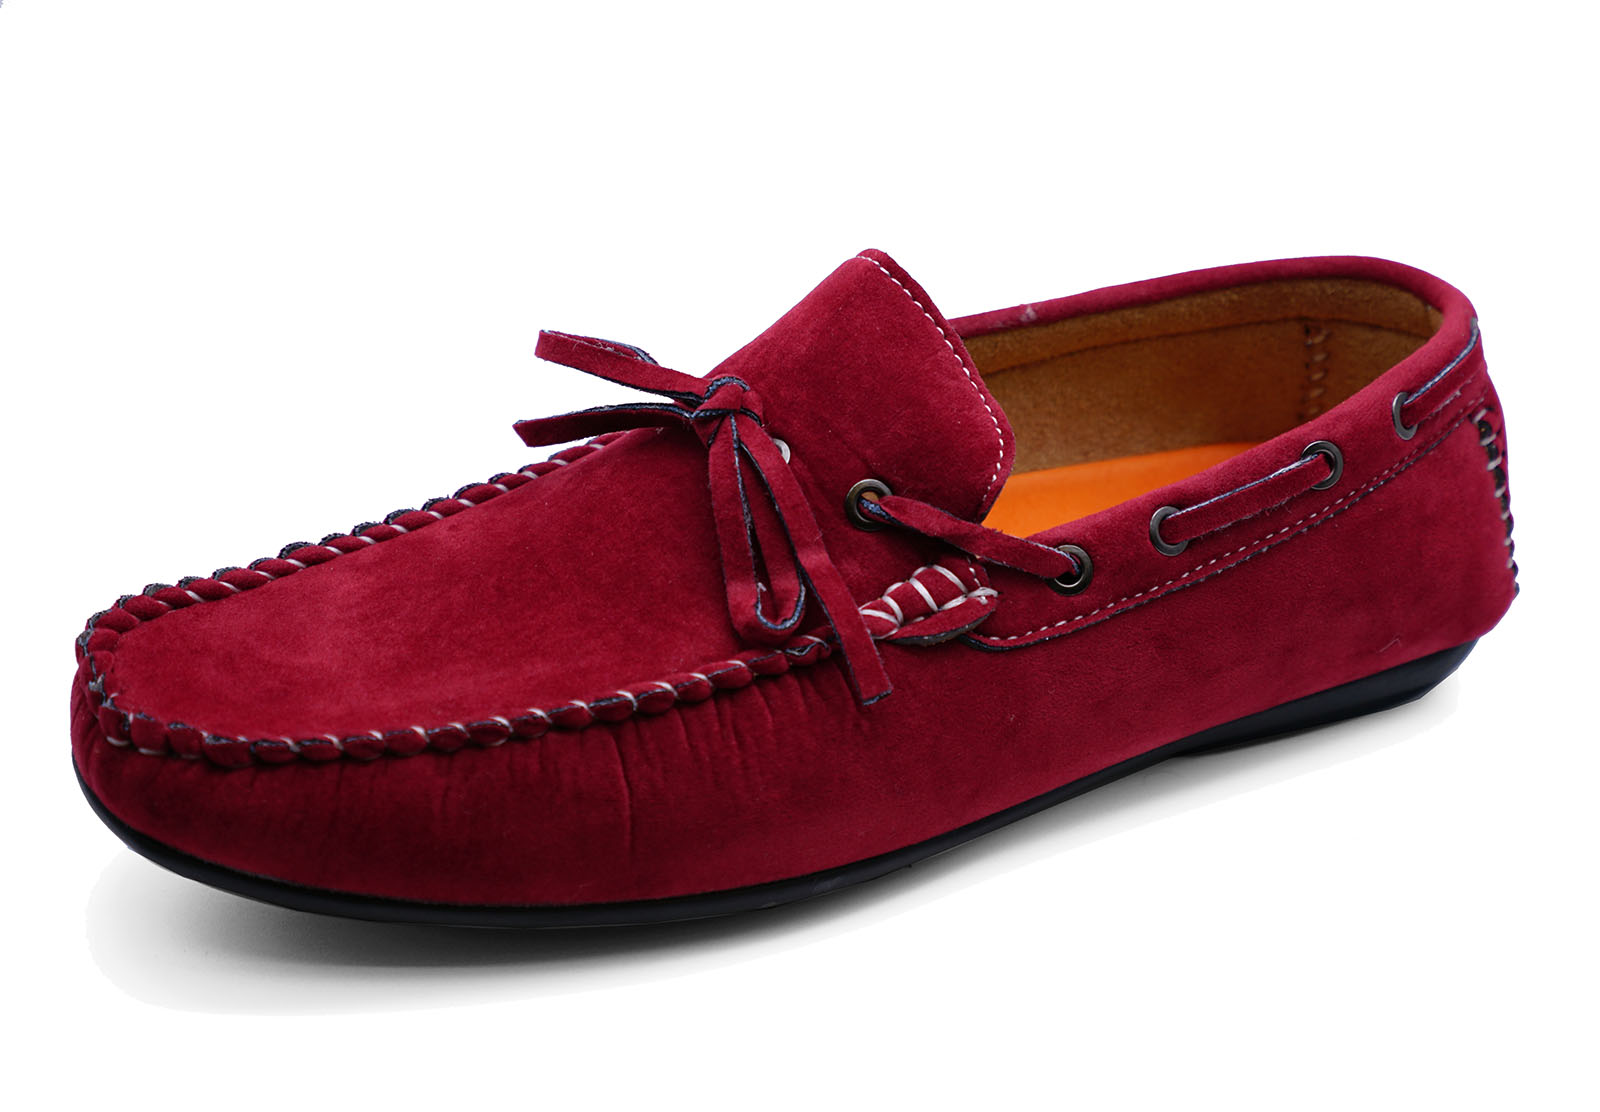 MENS-RED-SLIP-ON-MOCCASINS-LOAFERS-DRIVING-COMFY-BOAT-DECK-CASUAL-SHOES-6-11